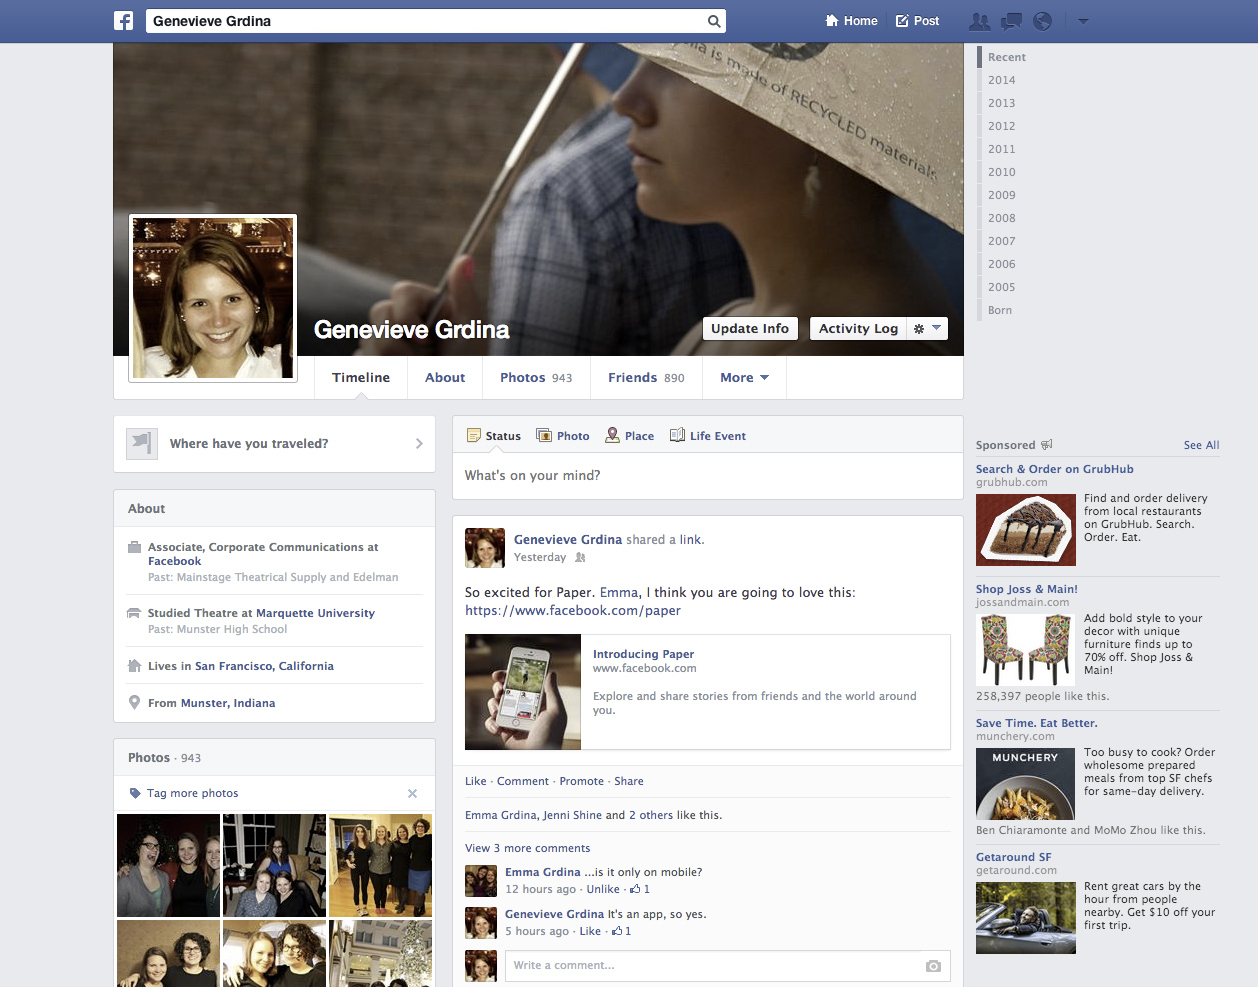 Facebook Profile Page, 2013-2014. Facebook introduced a new app, Paper, on Monday.